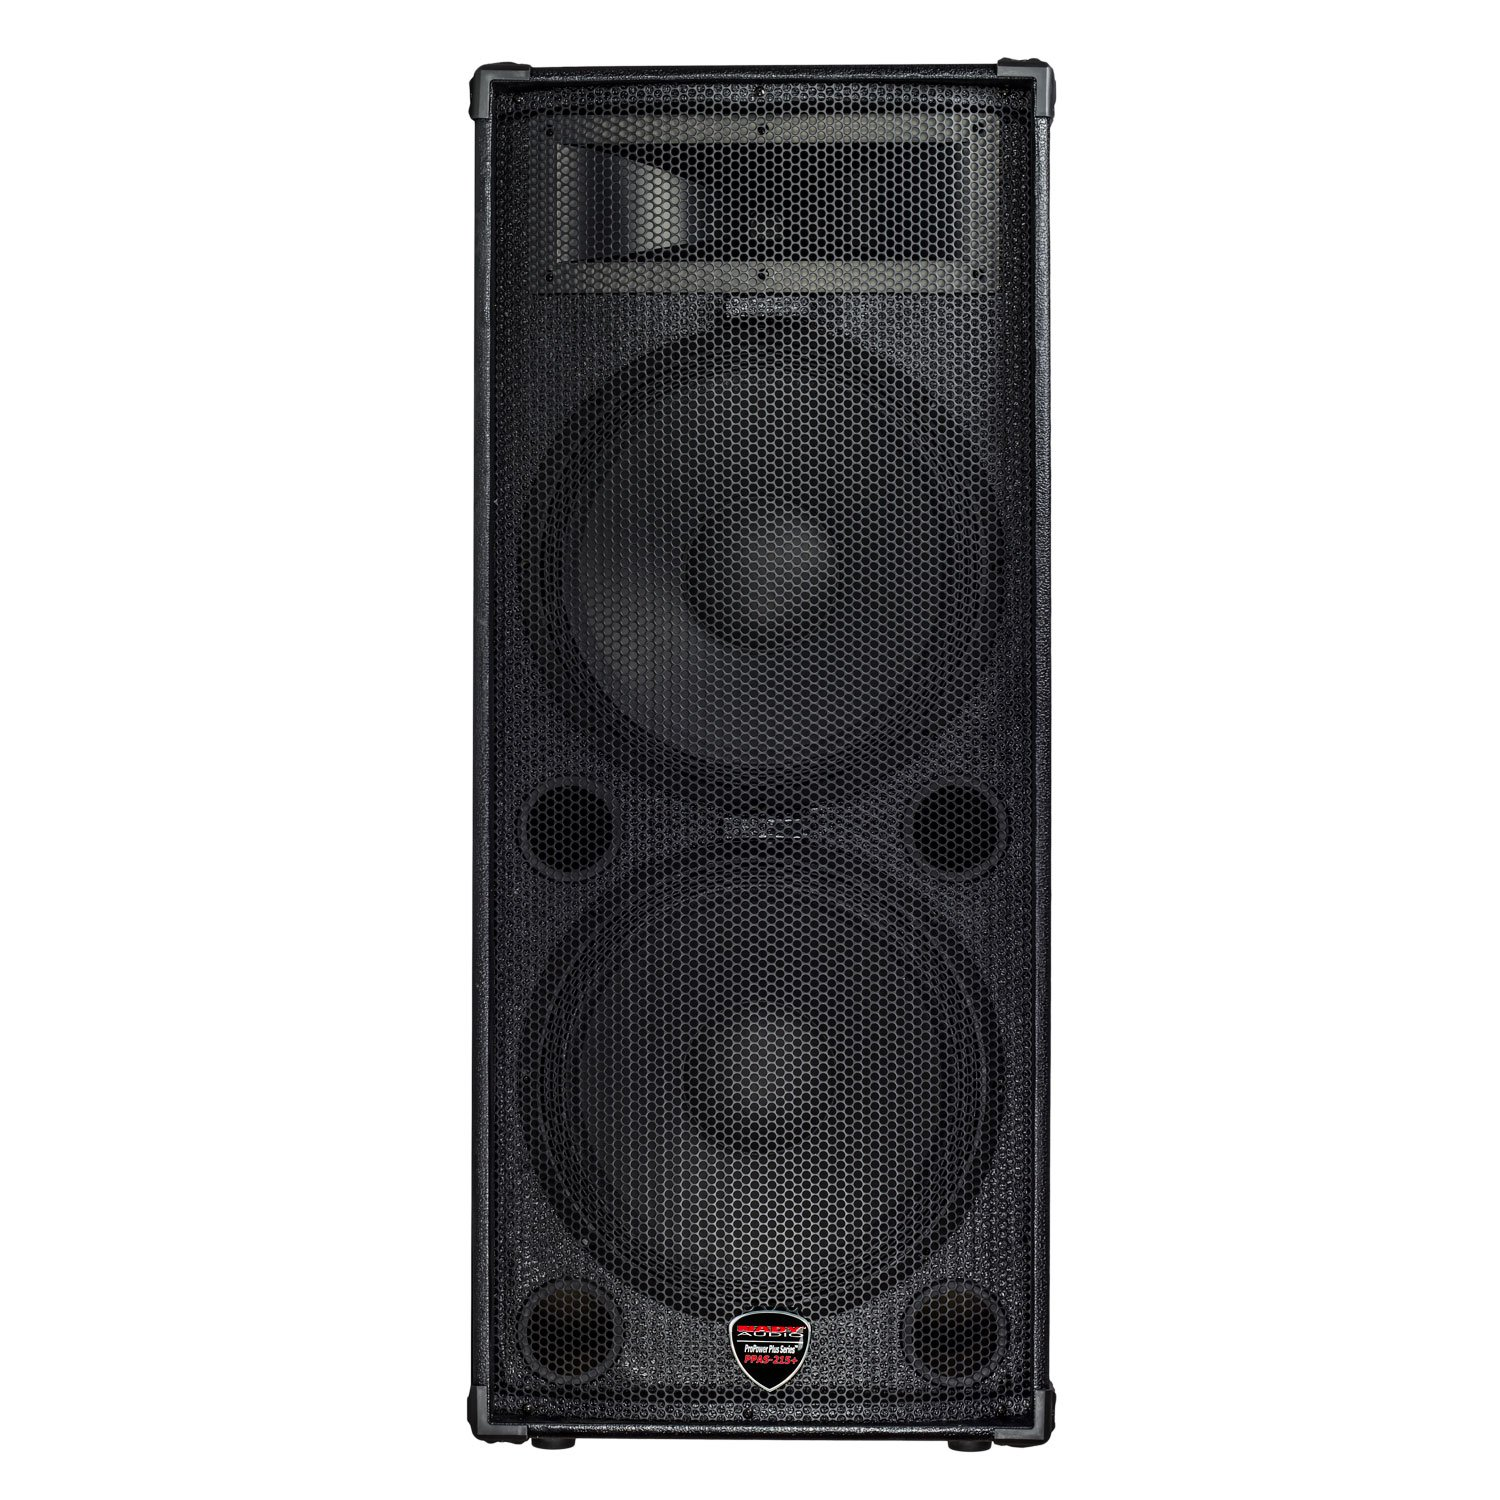 Nady PPAS-215+ / Full Range 2-Way Powered PA speaker / 200W class AB amp / 2 x 15'' woofers/Tolex covered with carrying handles